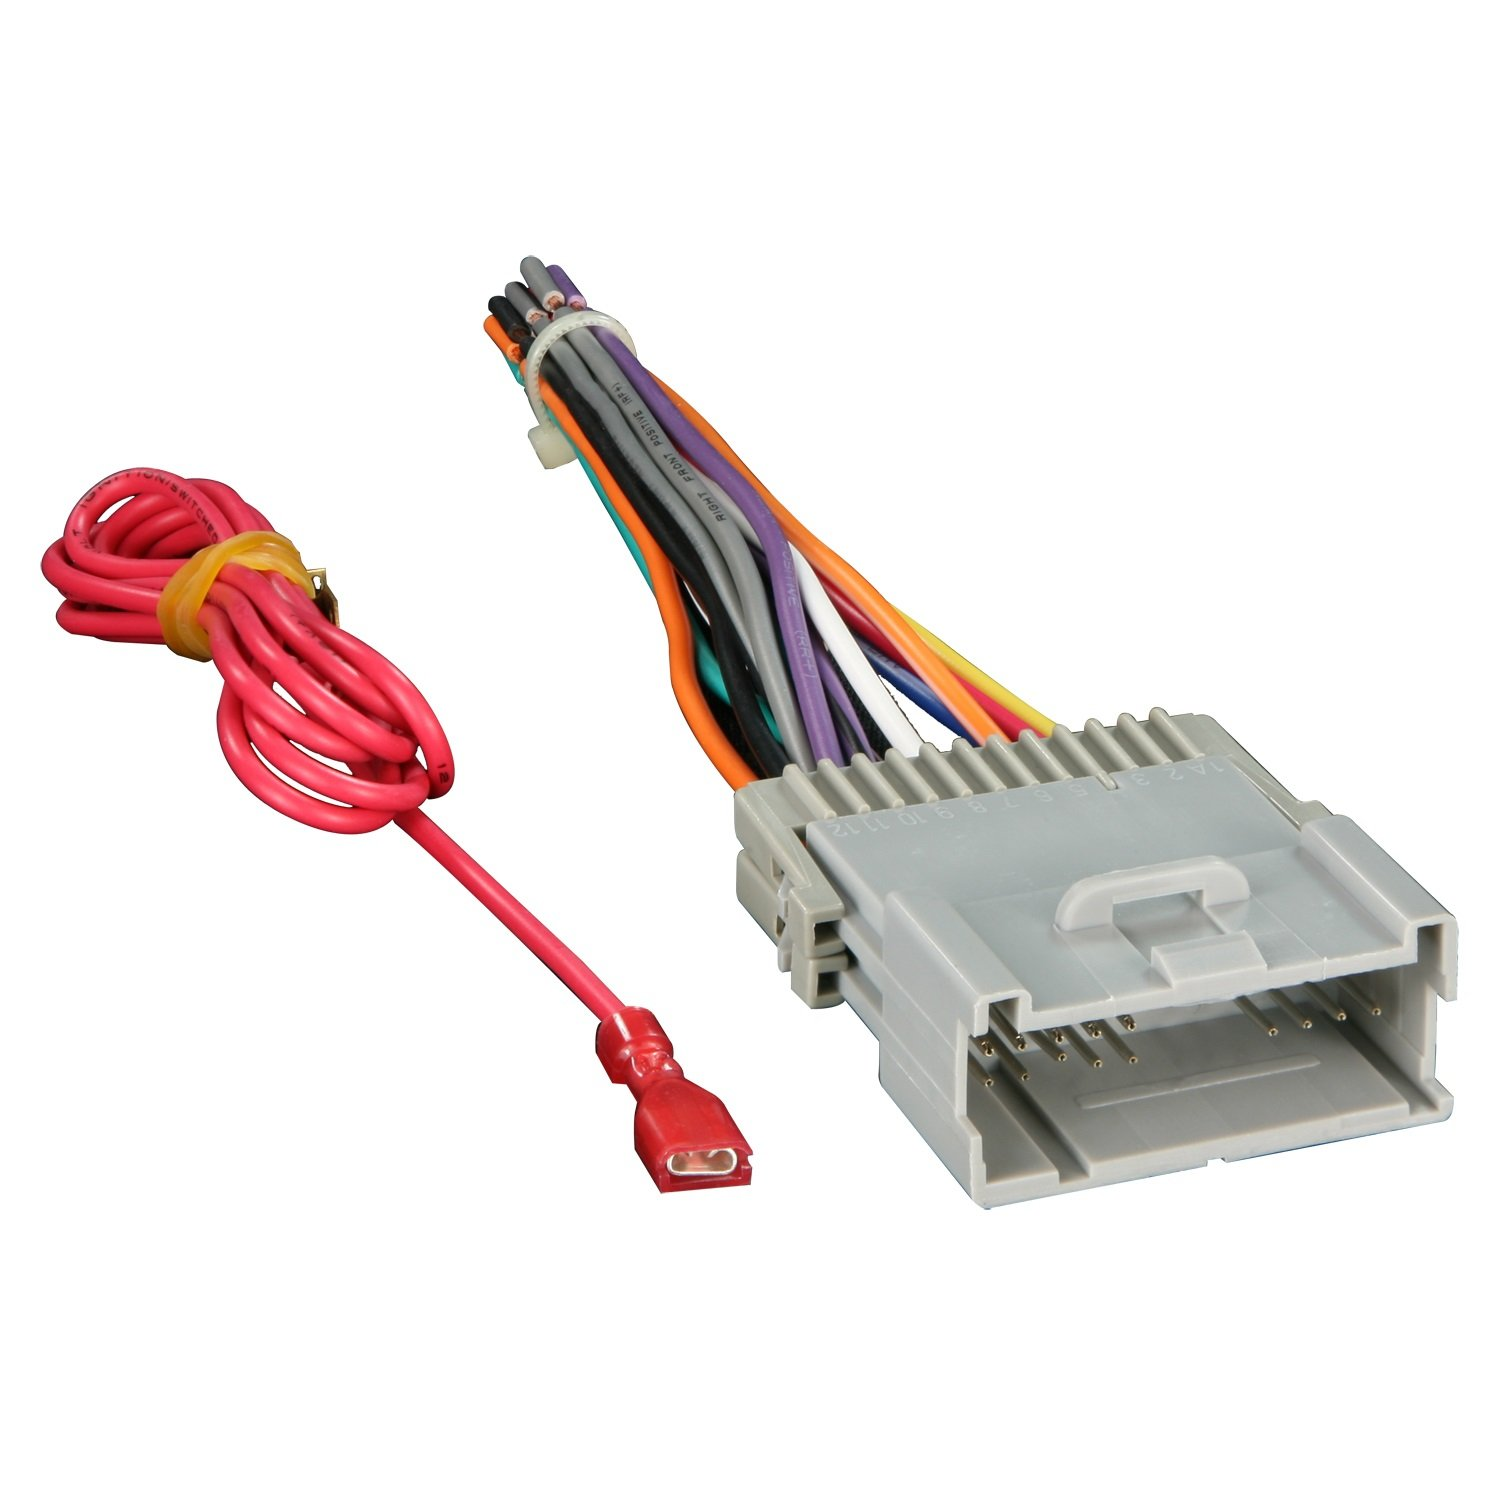 61eewxp9orL._SL1500_ amazon com metra 70 2003 radio wiring harness for gm 98 08 2015 GMC Yukon XL Denali at mifinder.co